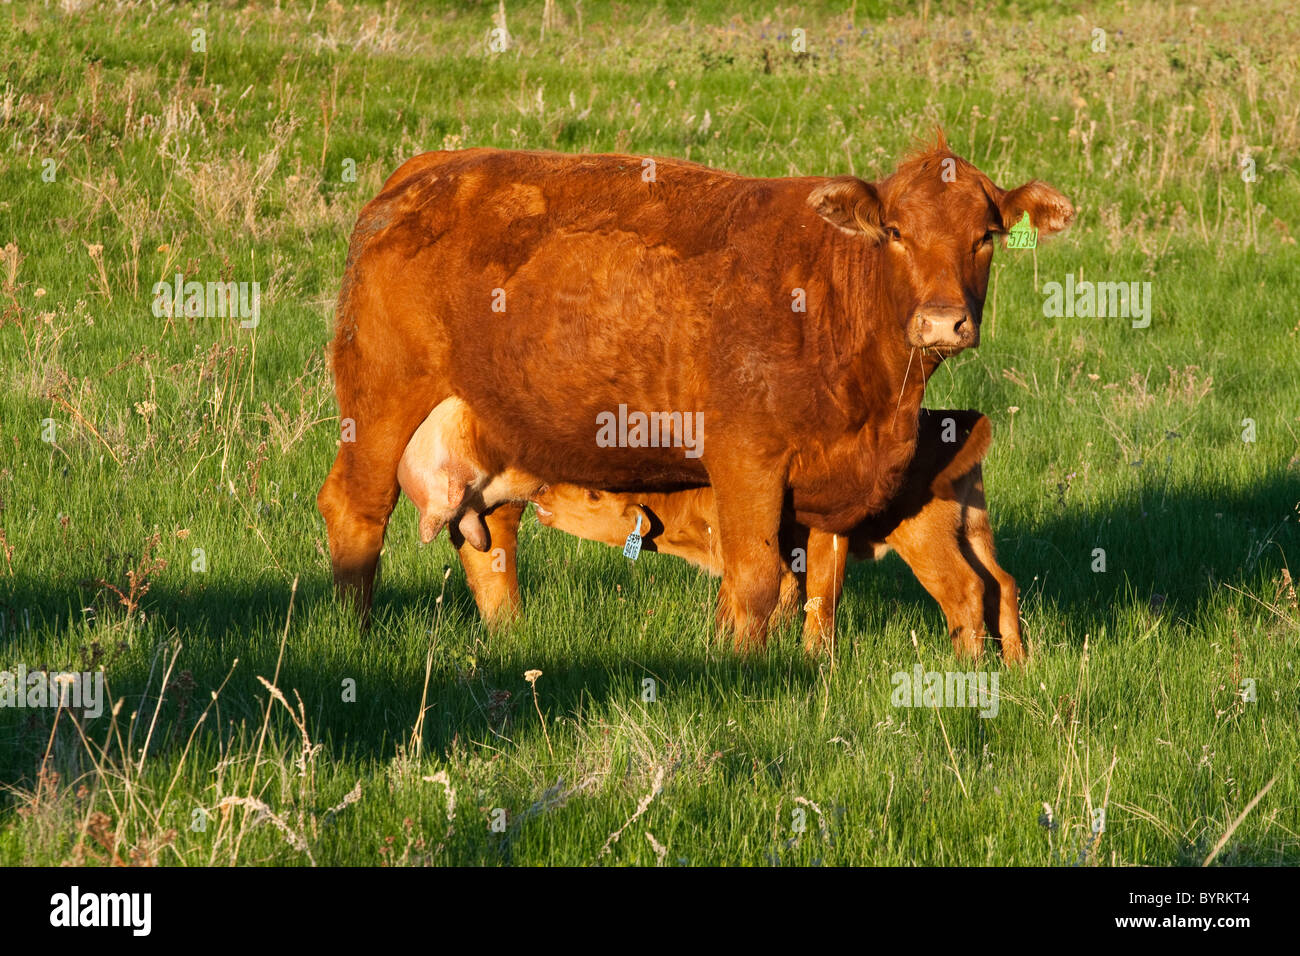 Livestock - A Red Angus beef cow with her nursing calf on a green pasture / Alberta, Canada. - Stock Image